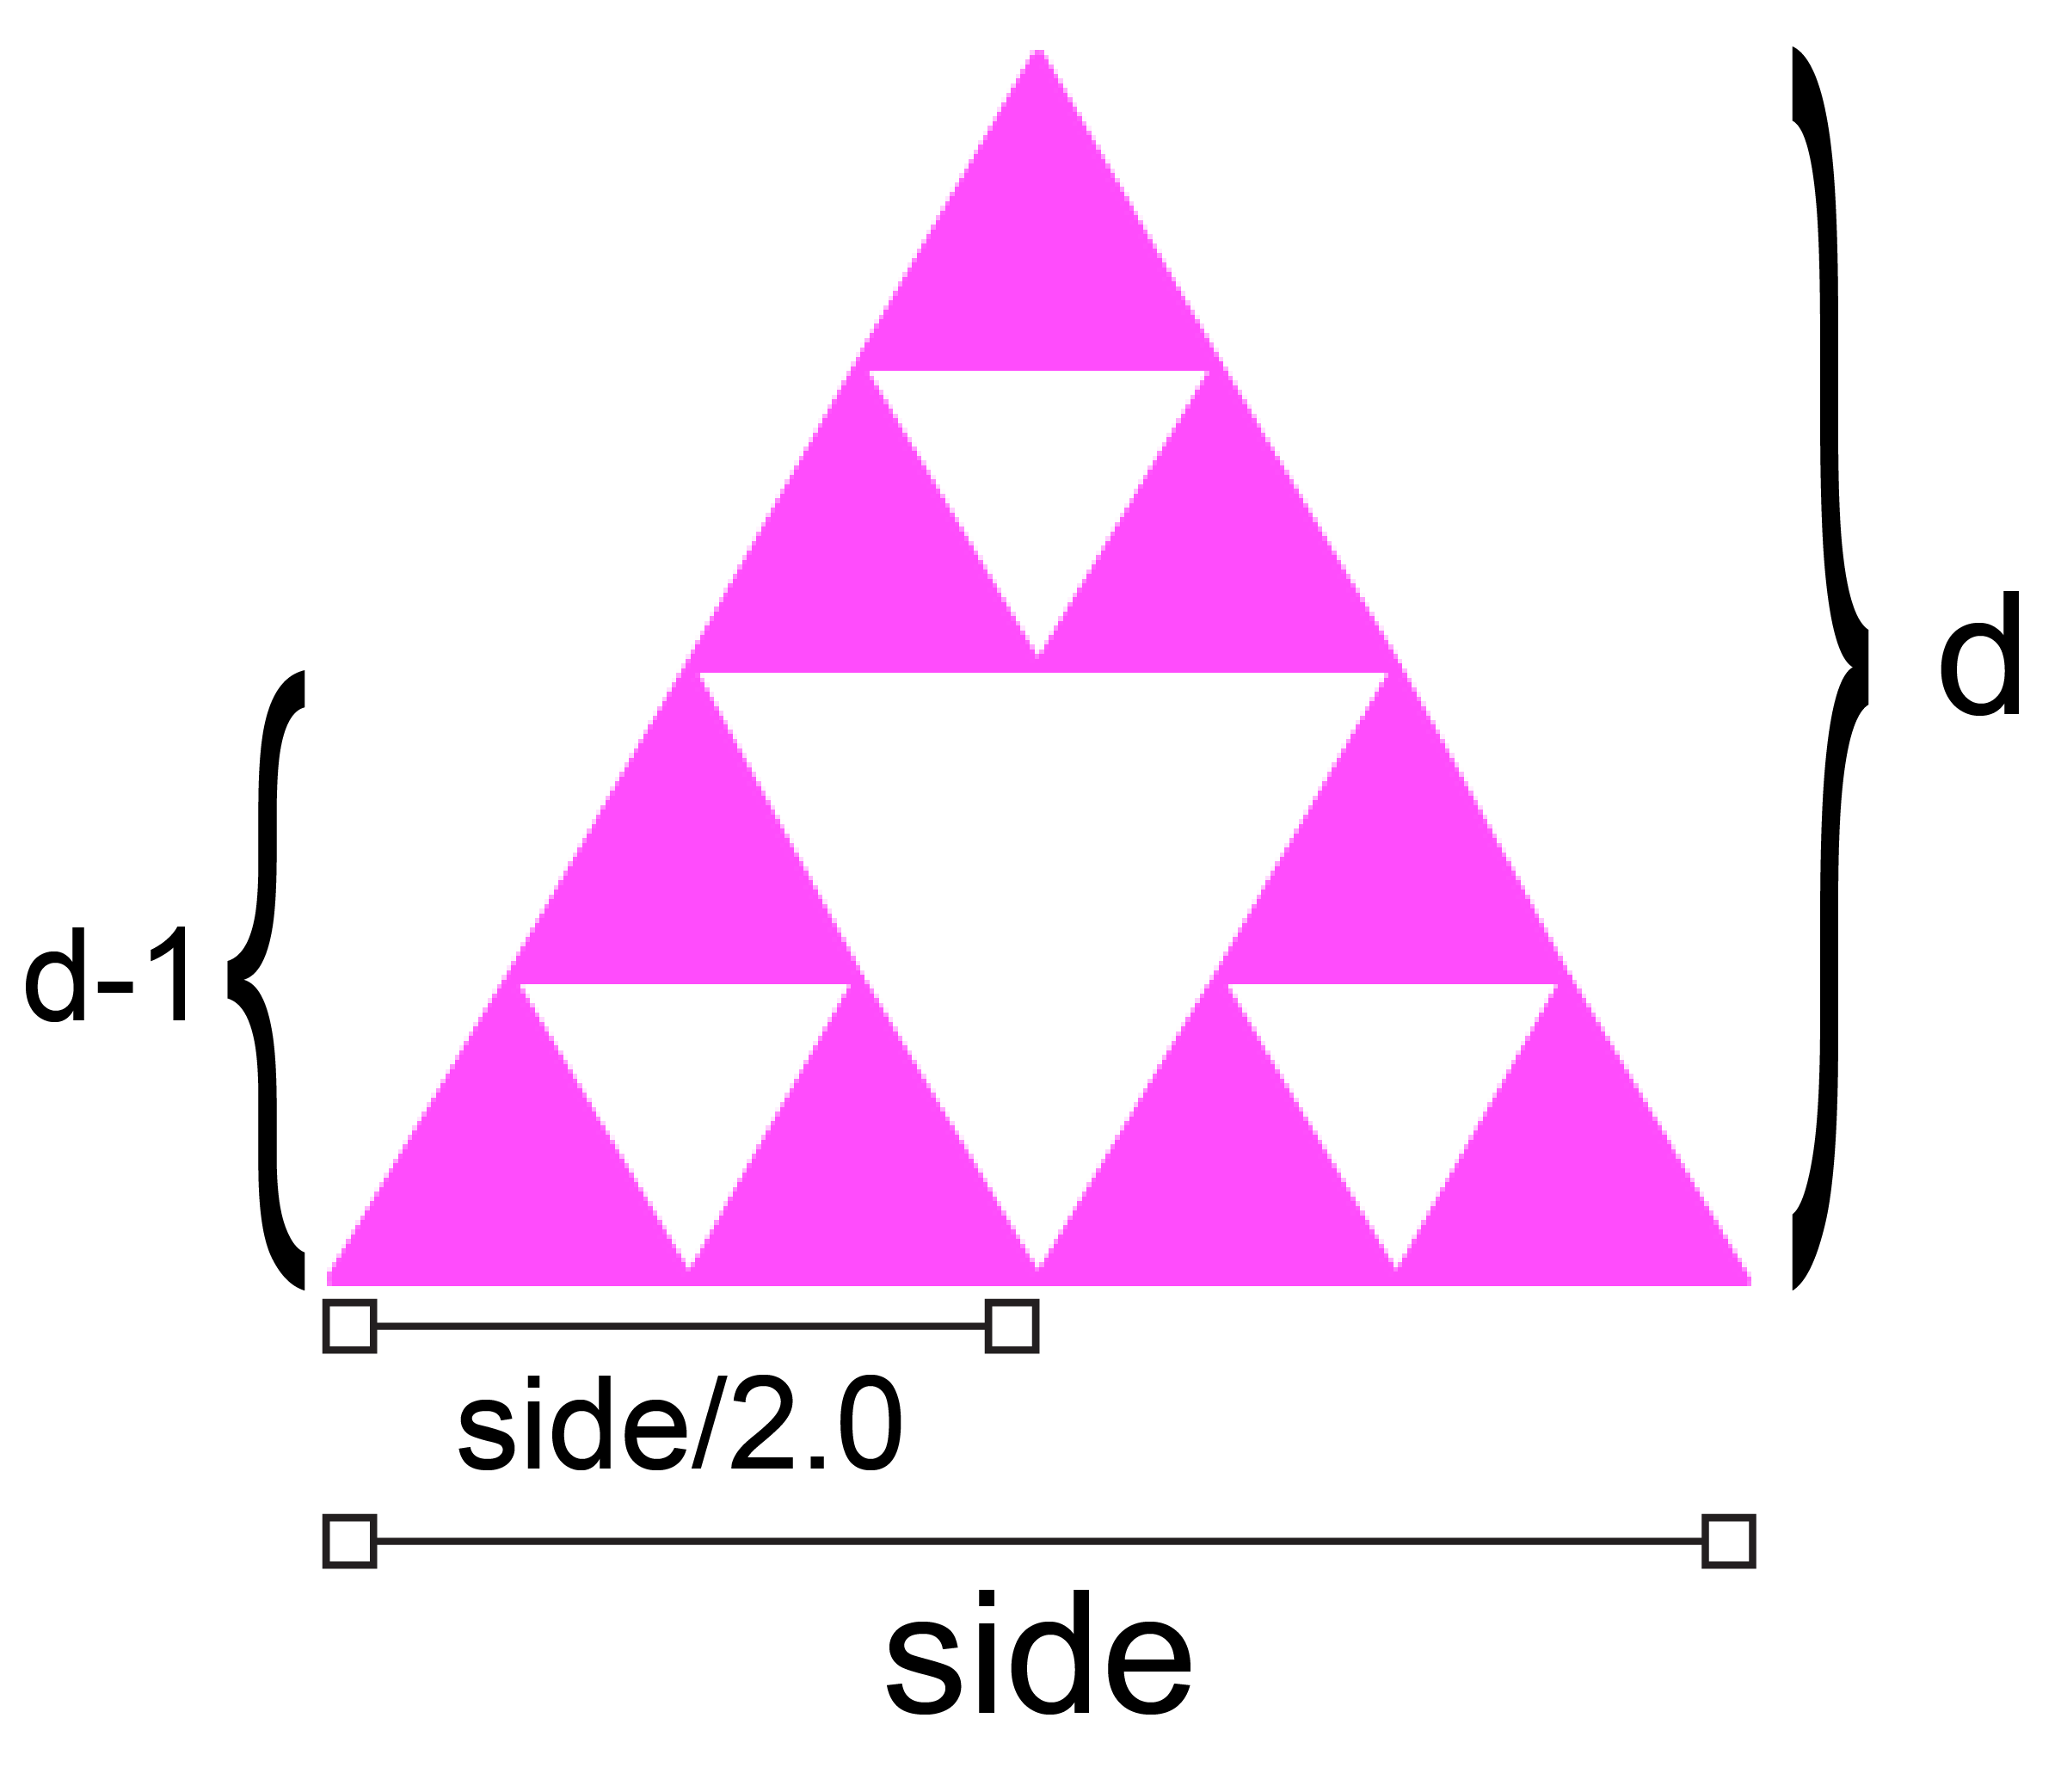 When You Draw This Shape, Do Not Try To